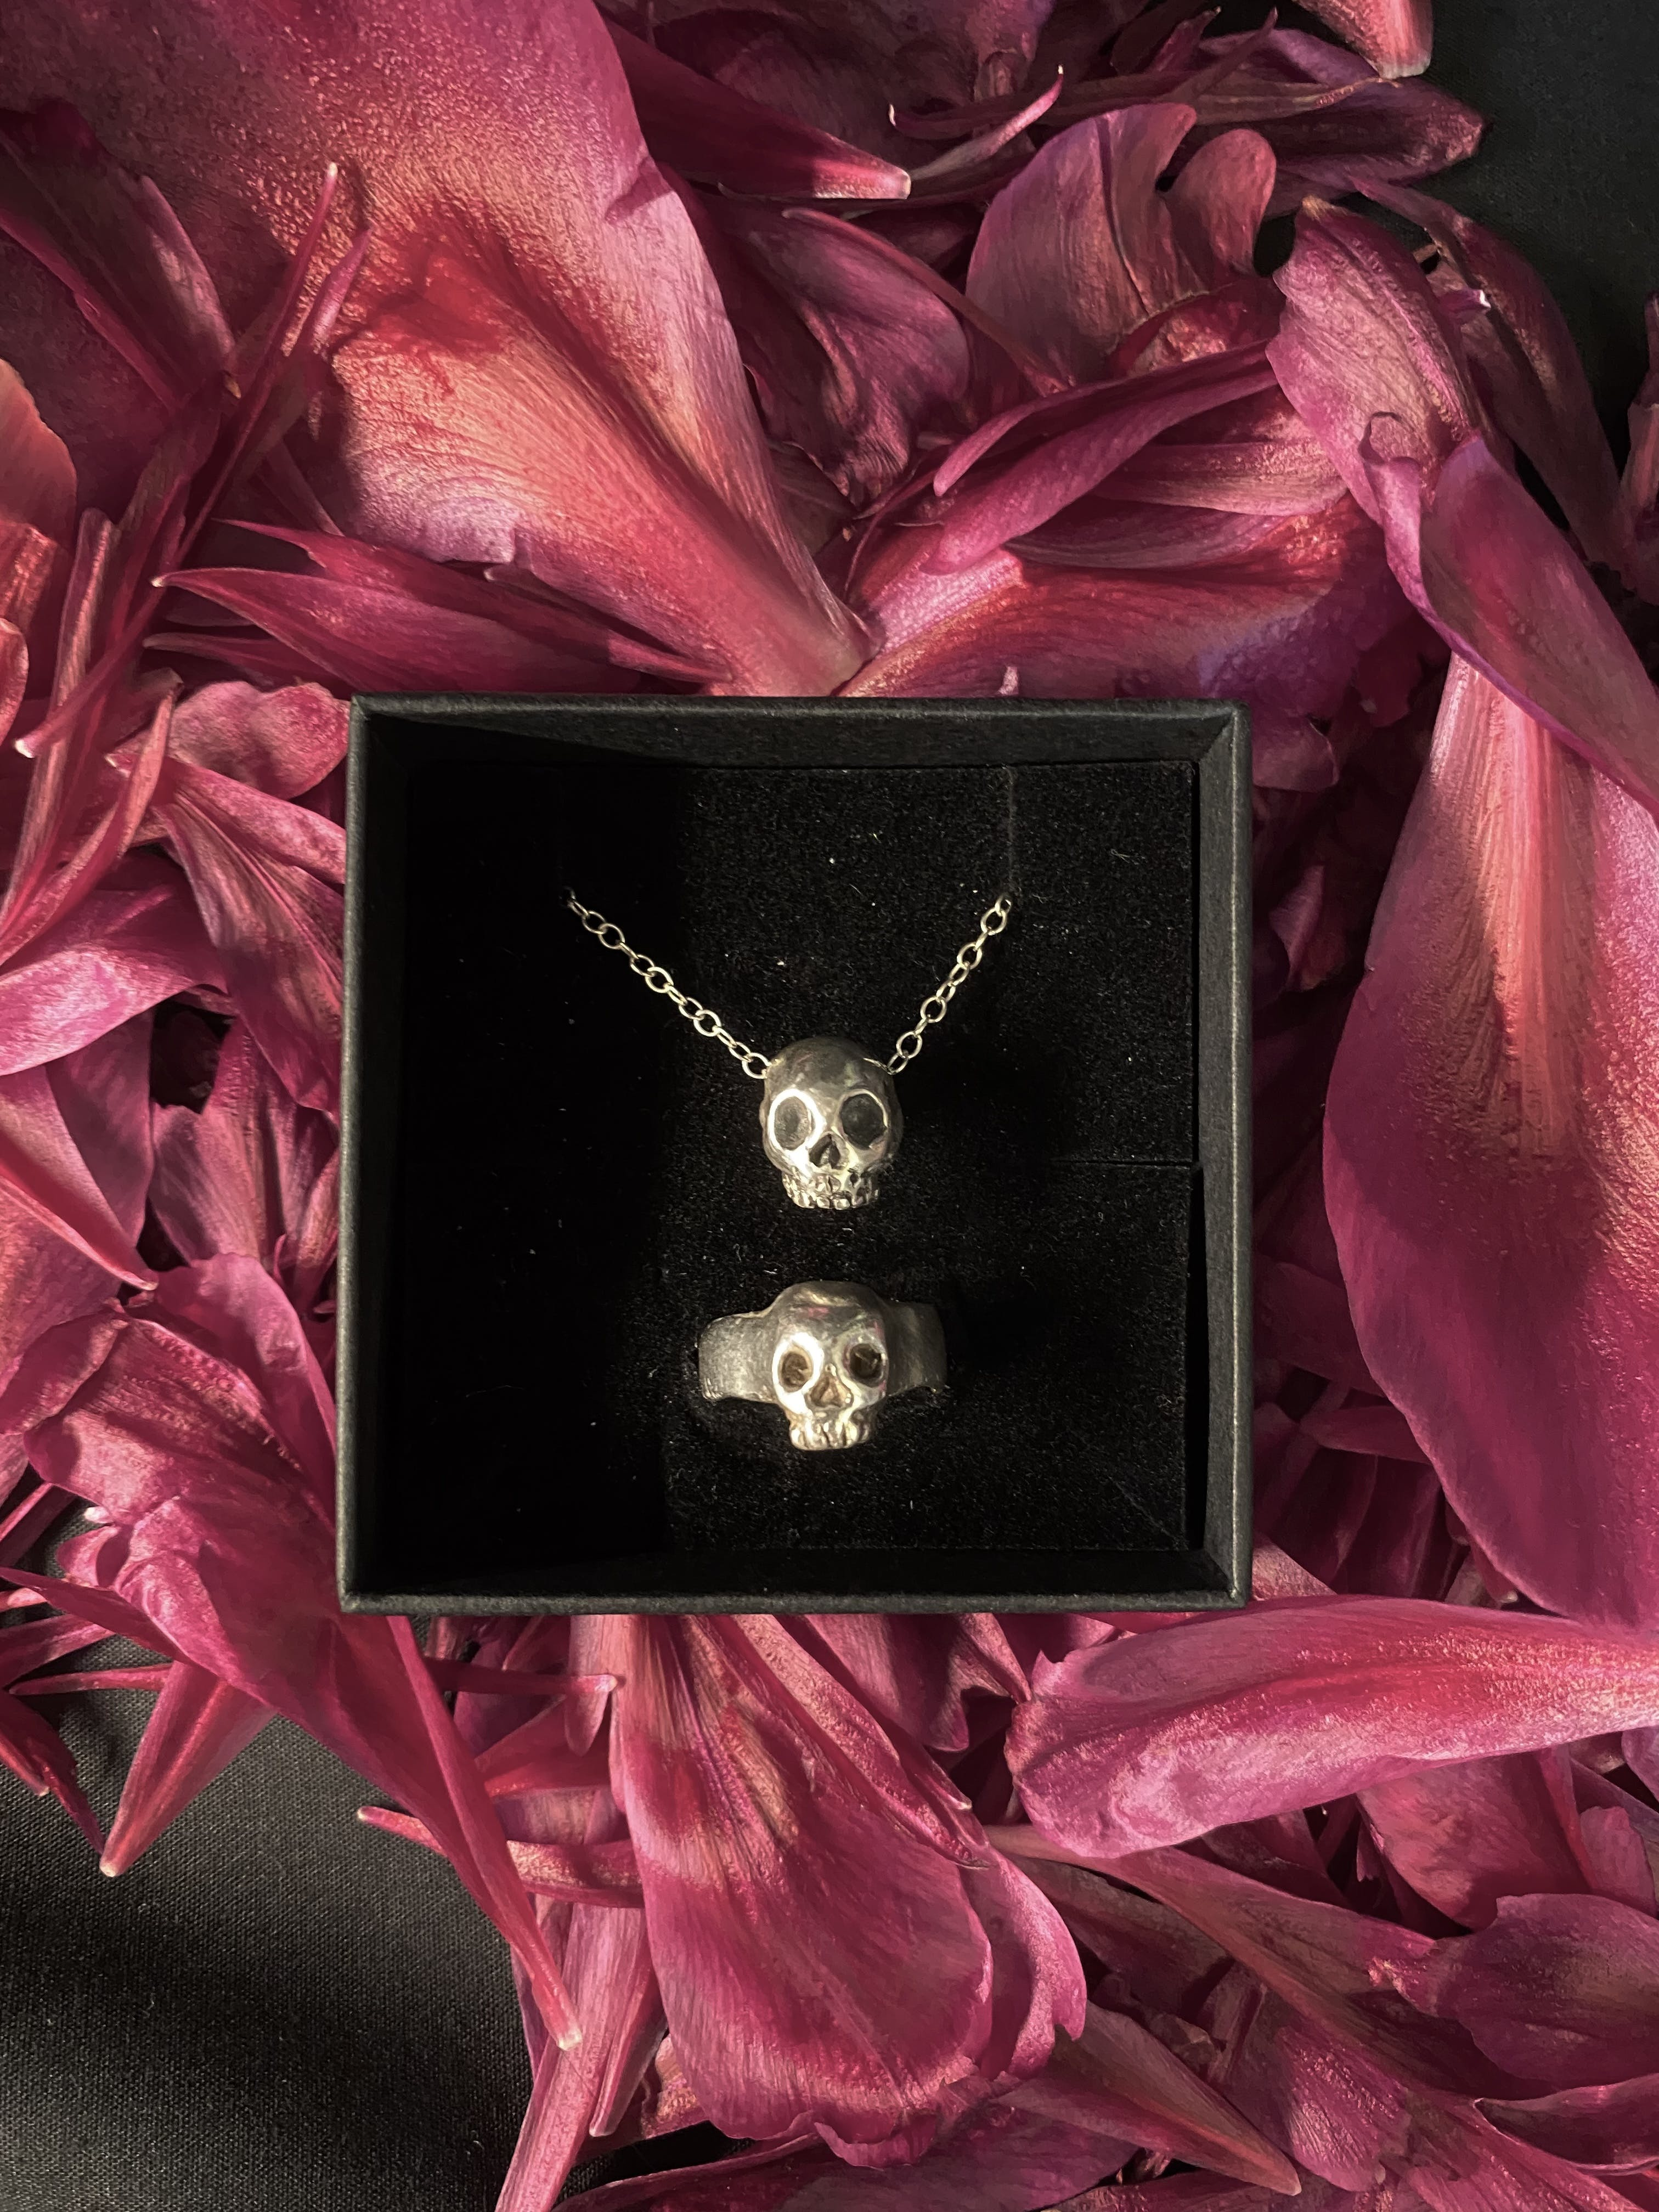 A small skull face on a chain in a black box which also contains a skull face on a small ring. The box sits on a pile of flower petals